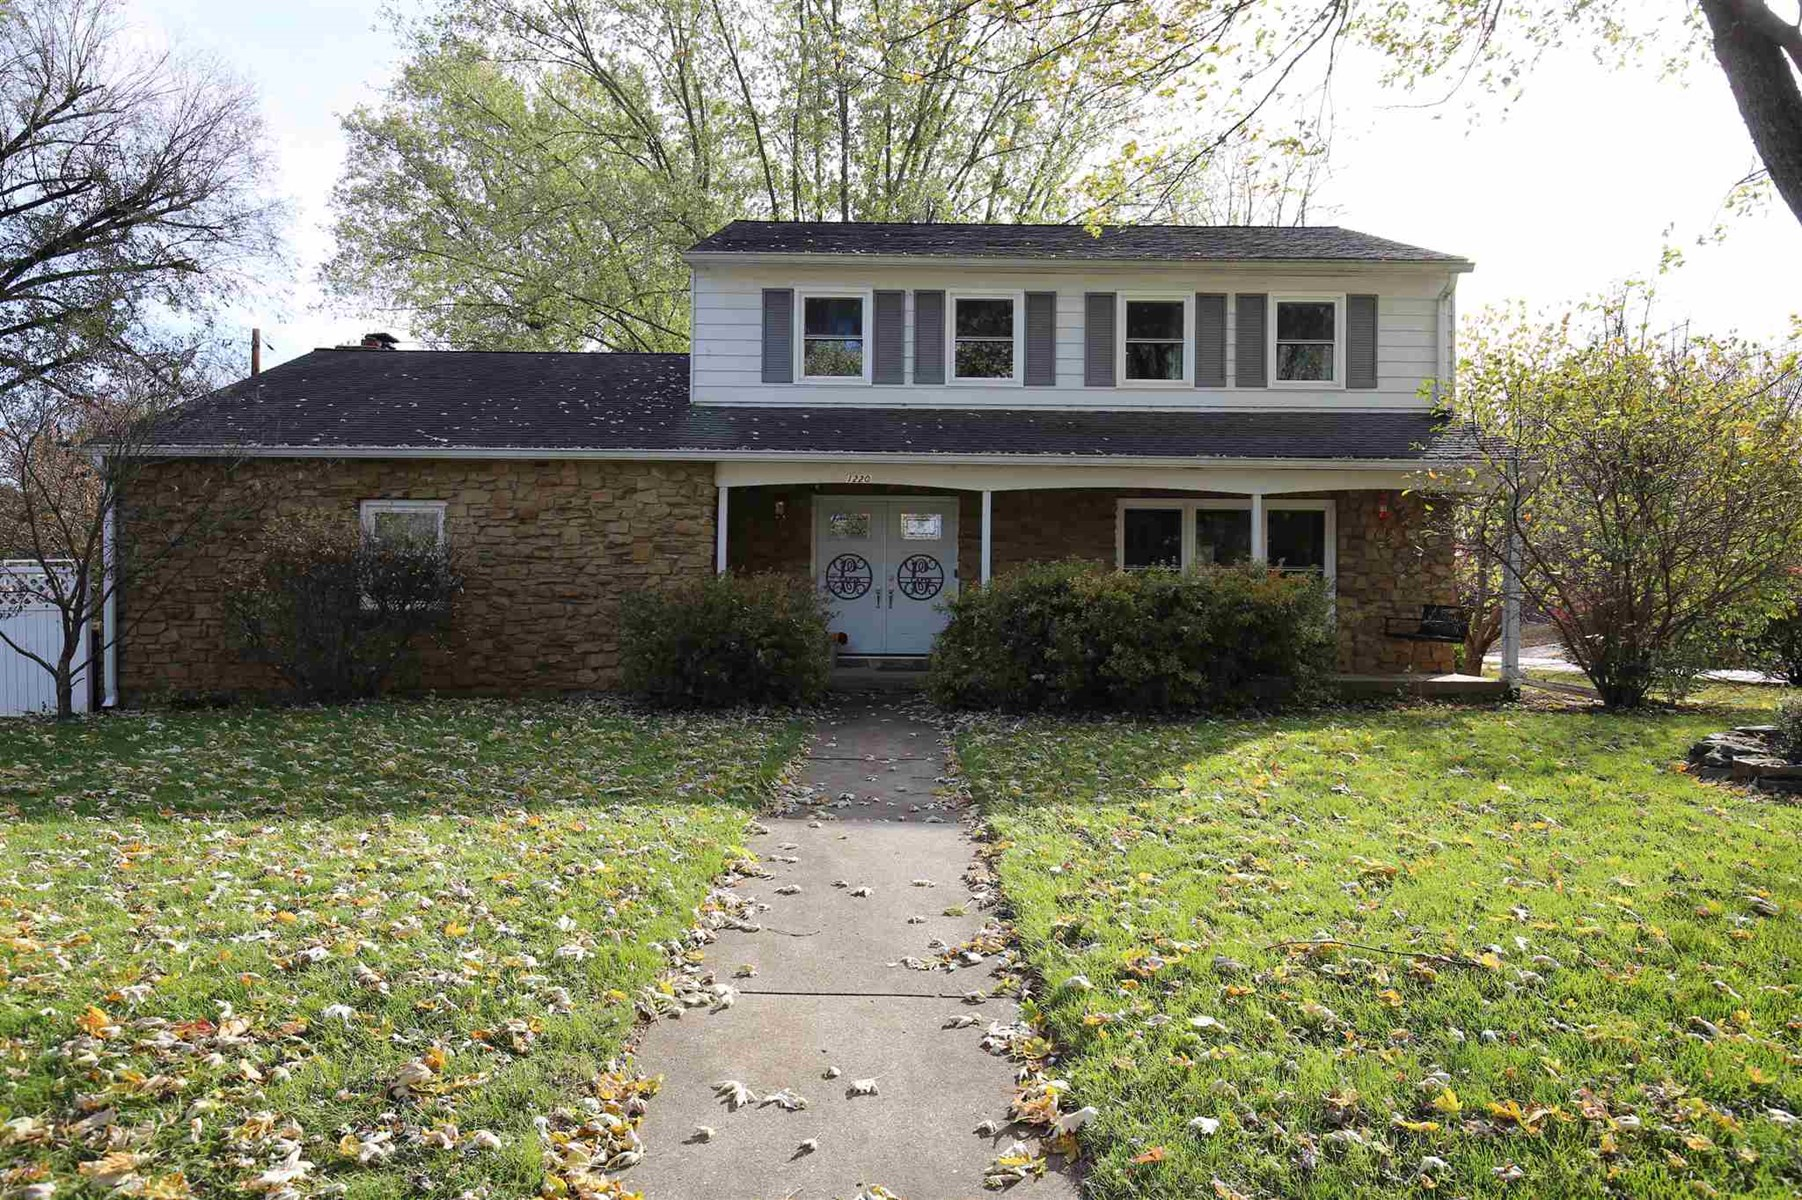 2-Story Country Home for Sale   Childs School District   IN